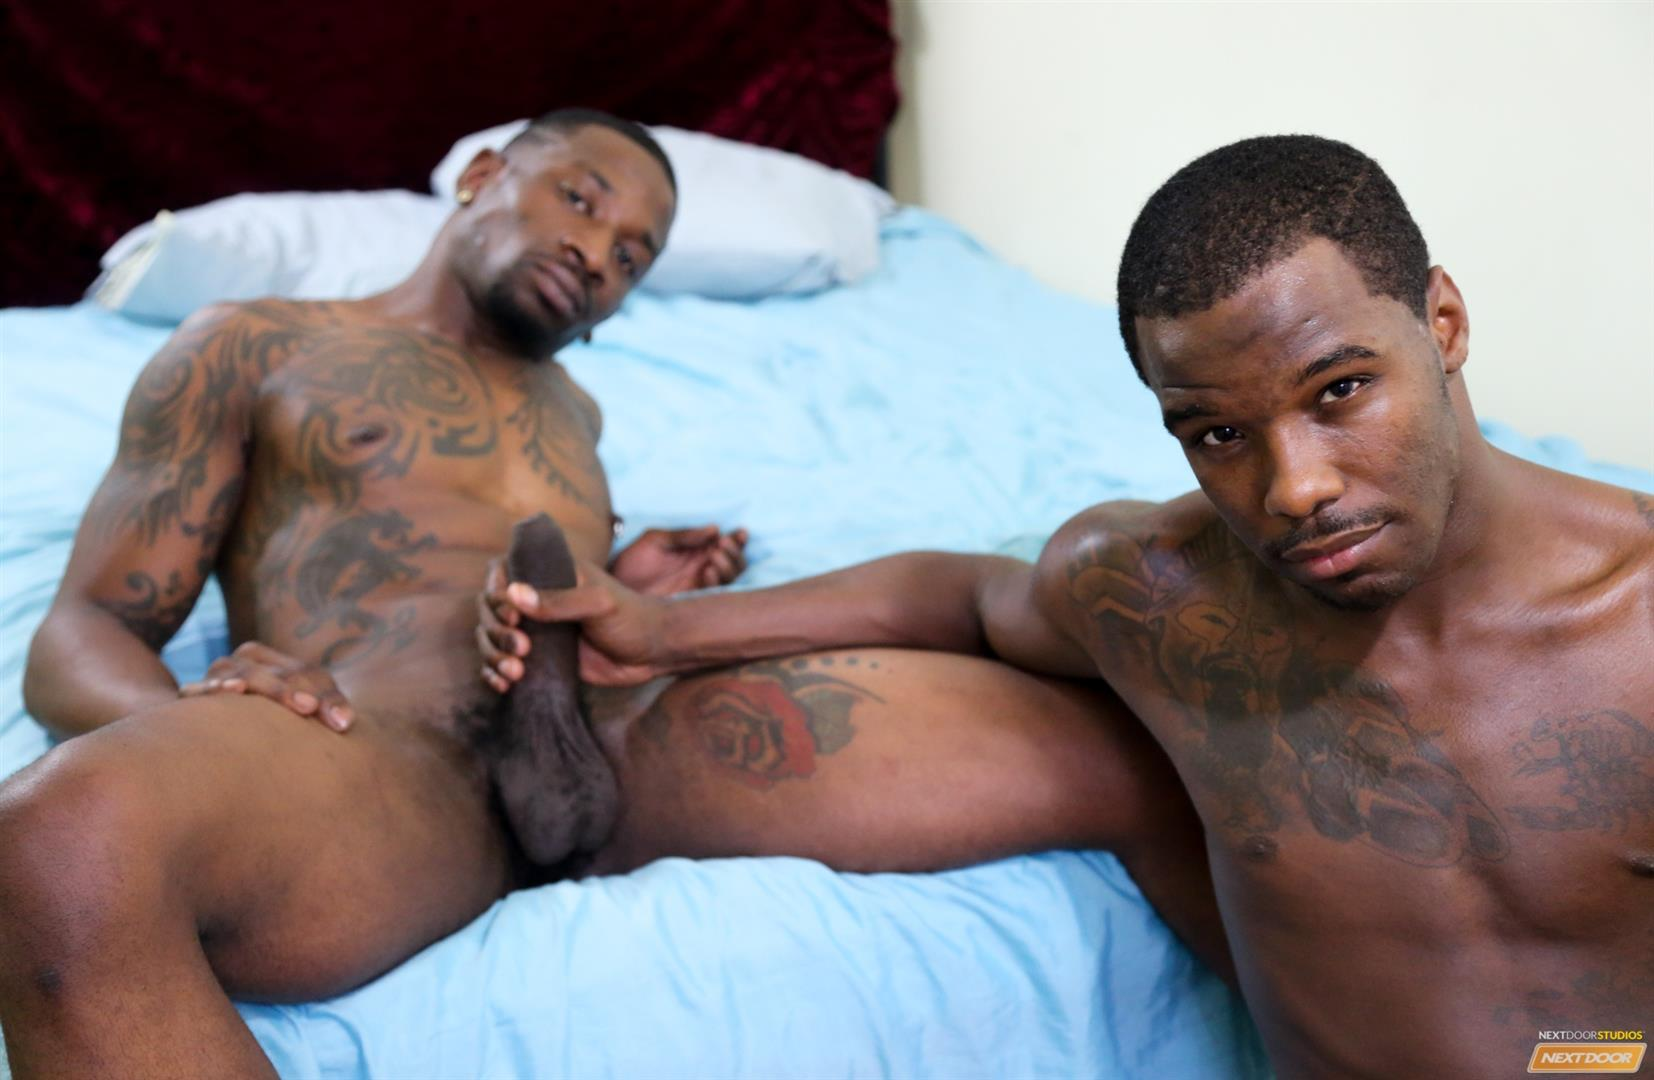 Next-Door-Ebony-Muscular-Black-Guys-Fucking-Free-Gay-Sex-Video-09 A Hard Morning Fuck With Two Hung Black Lovers